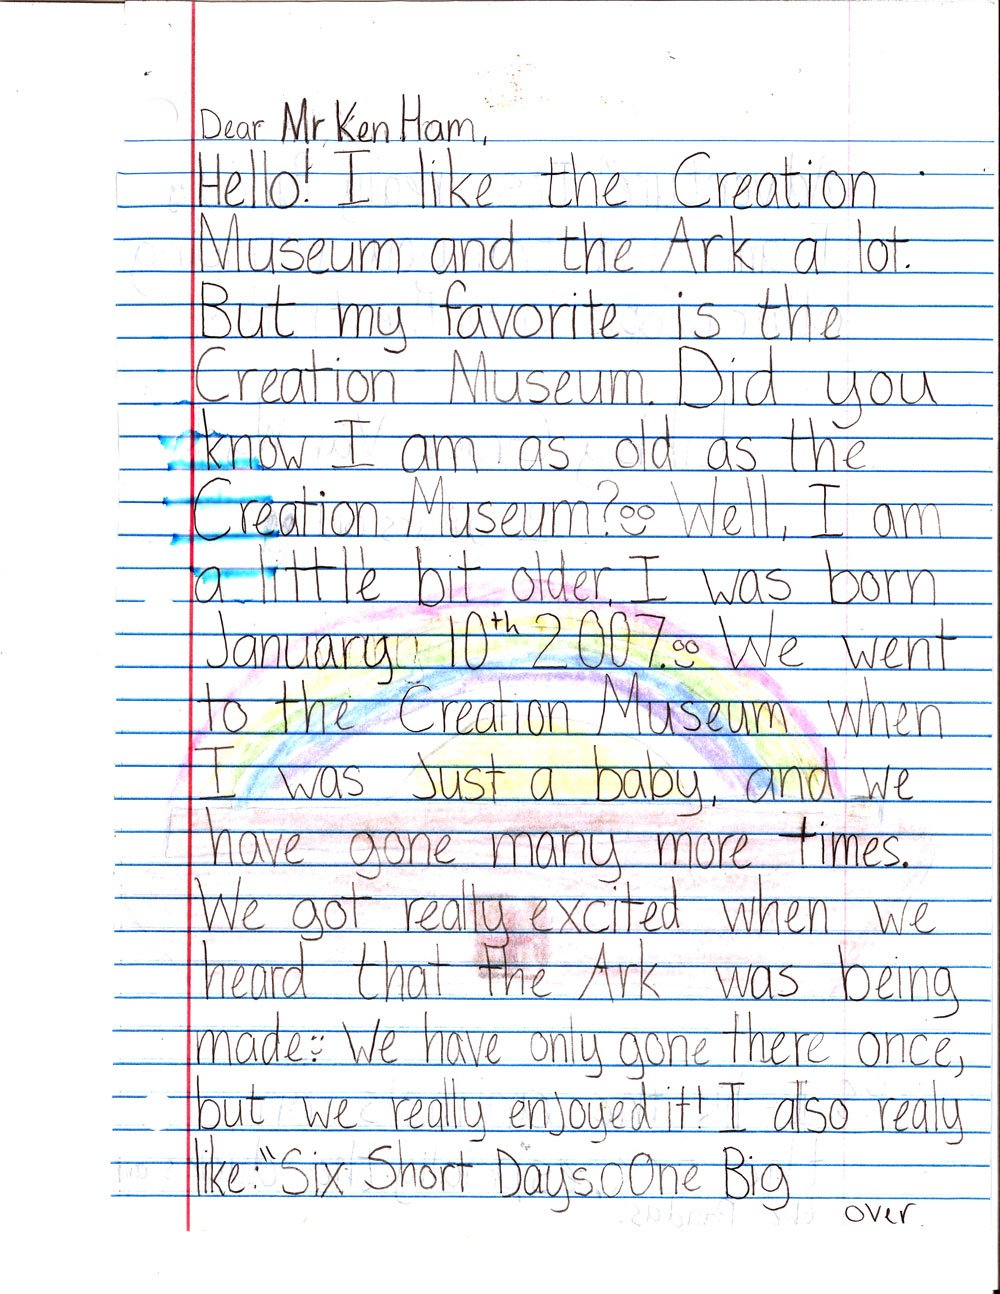 Encouraging Letters From Kids To Ken Ham